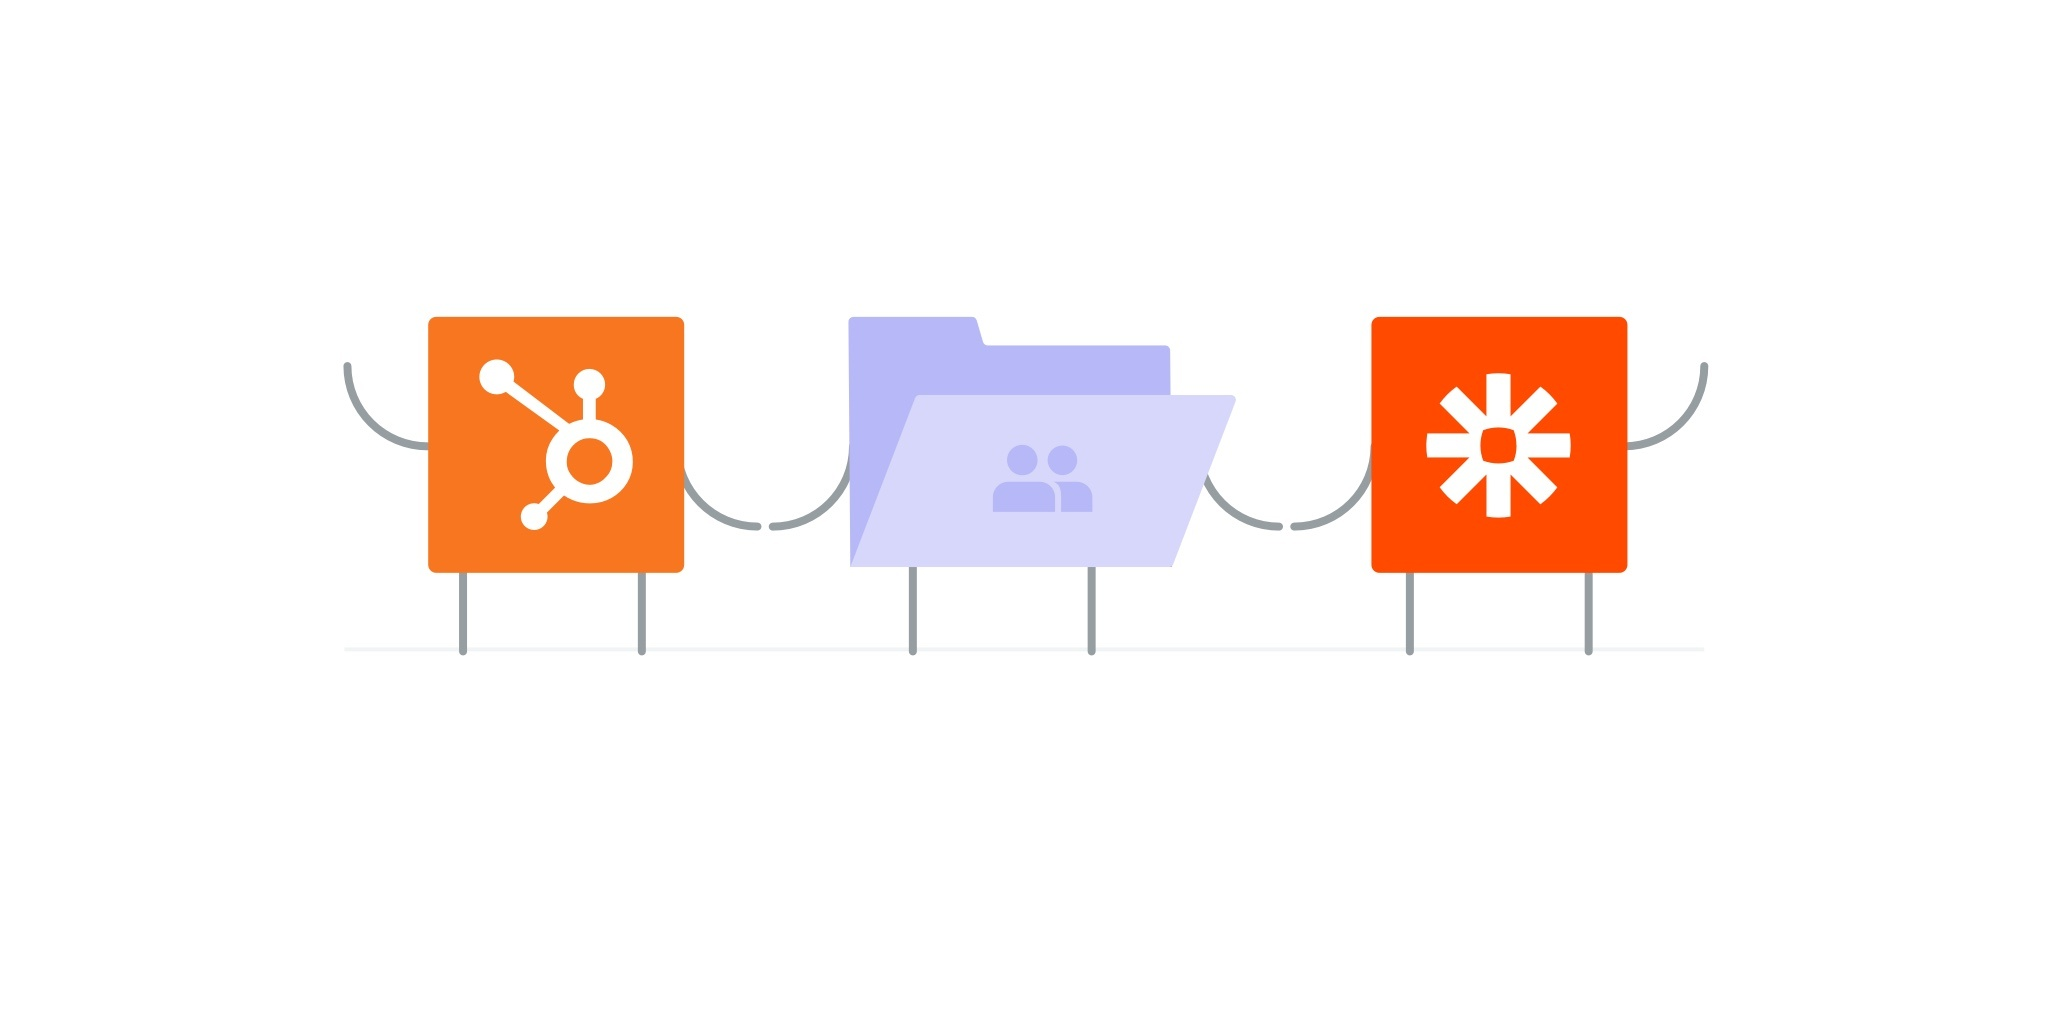 How to Increase Team Productivity Using Connector Applications